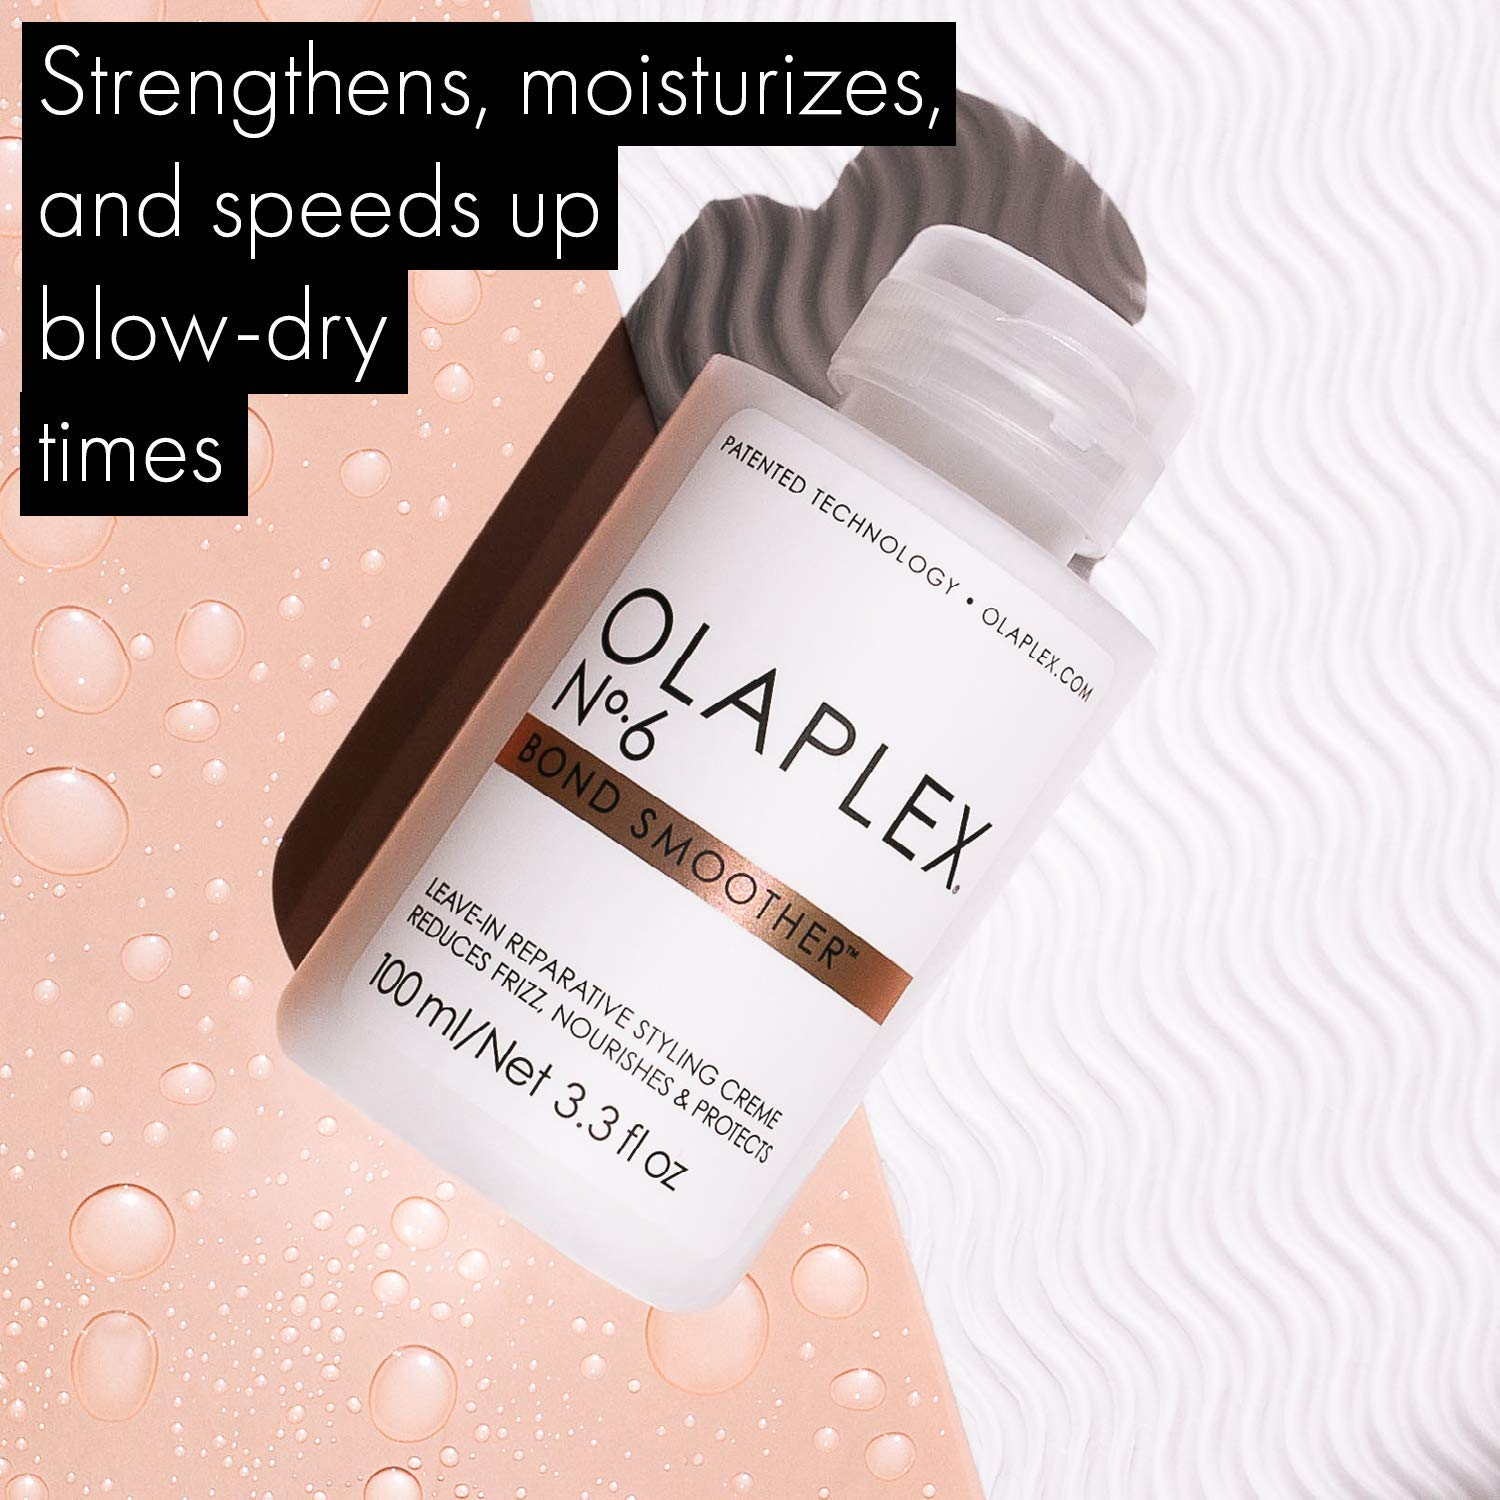 Olaplex No. 6 Bond Smoother styling creme as frizz-reducing conditioner for curly hair